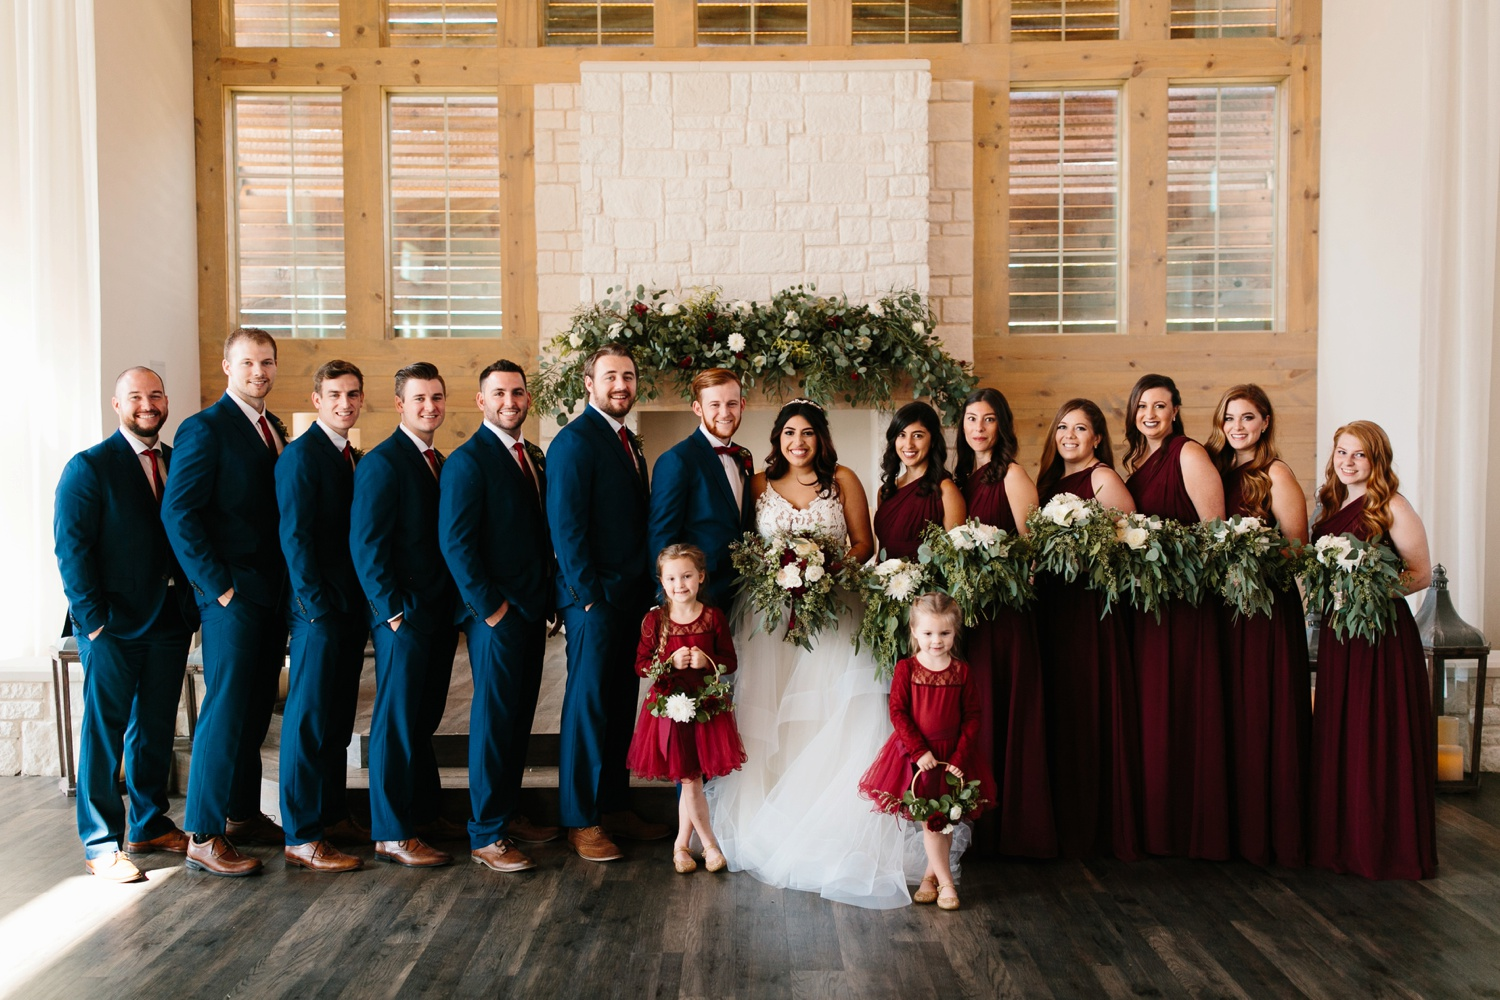 Grant + Lysette | a vibrant, deep burgundy and navy, and mixed metals wedding at Hidden Pines Chapel by North Texas Wedding Photographer Rachel Meagan Photography 117